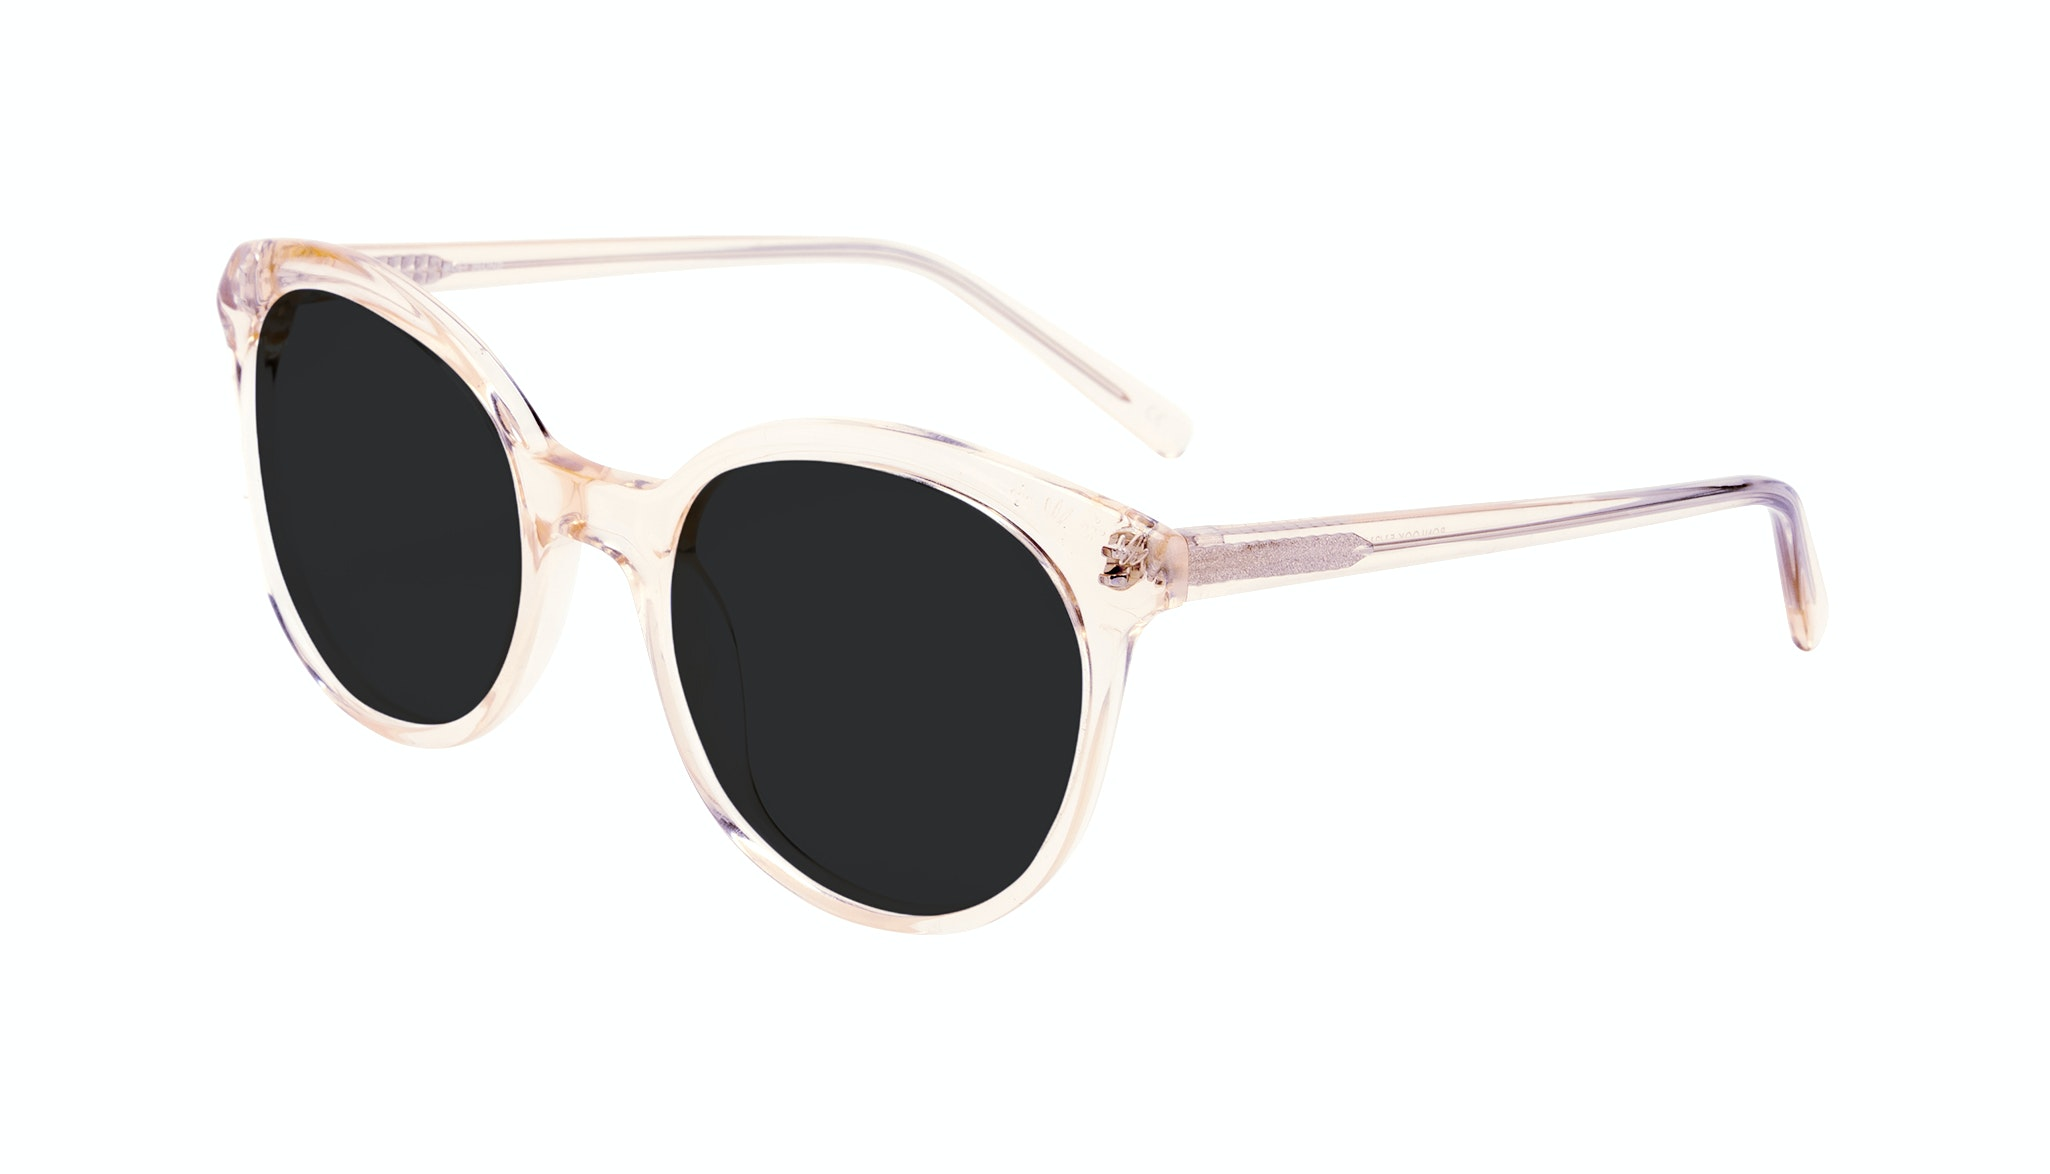 Affordable Fashion Glasses Round Sunglasses Women Must Blond Tilt